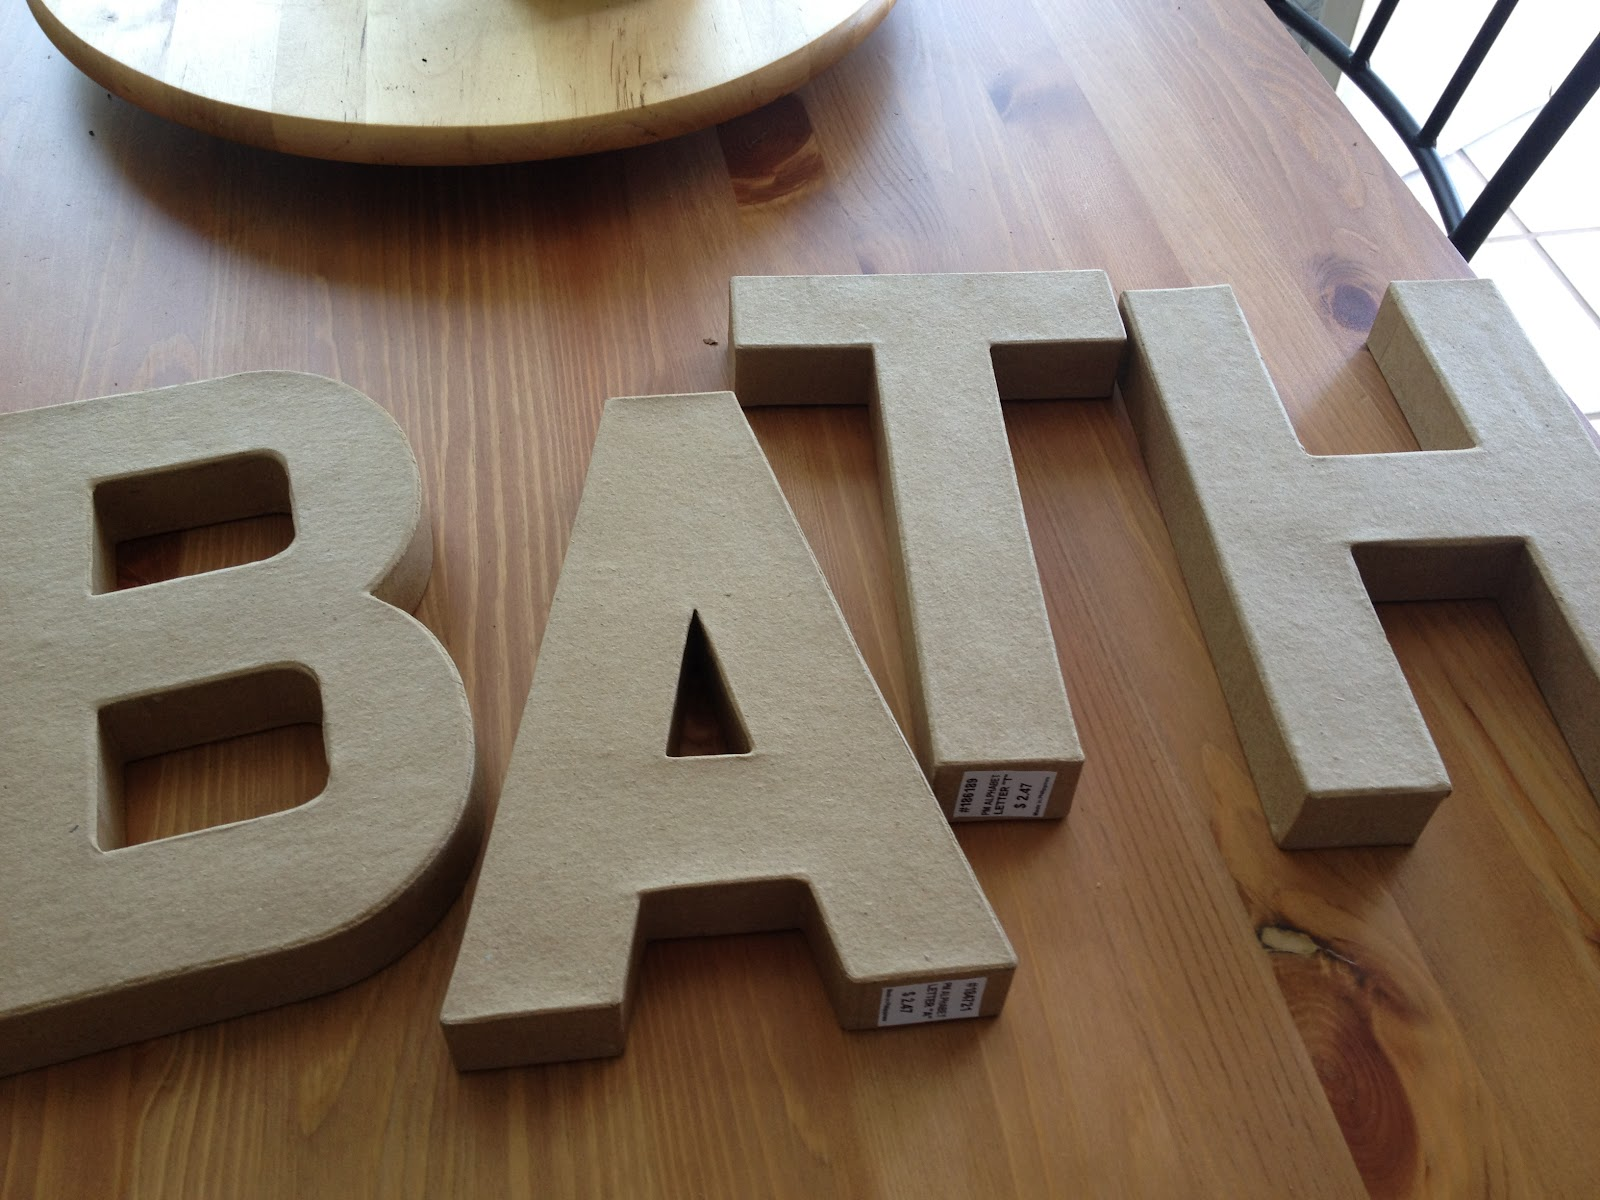 Everyday with the jays who needs anthropologie for 24 cardboard letters